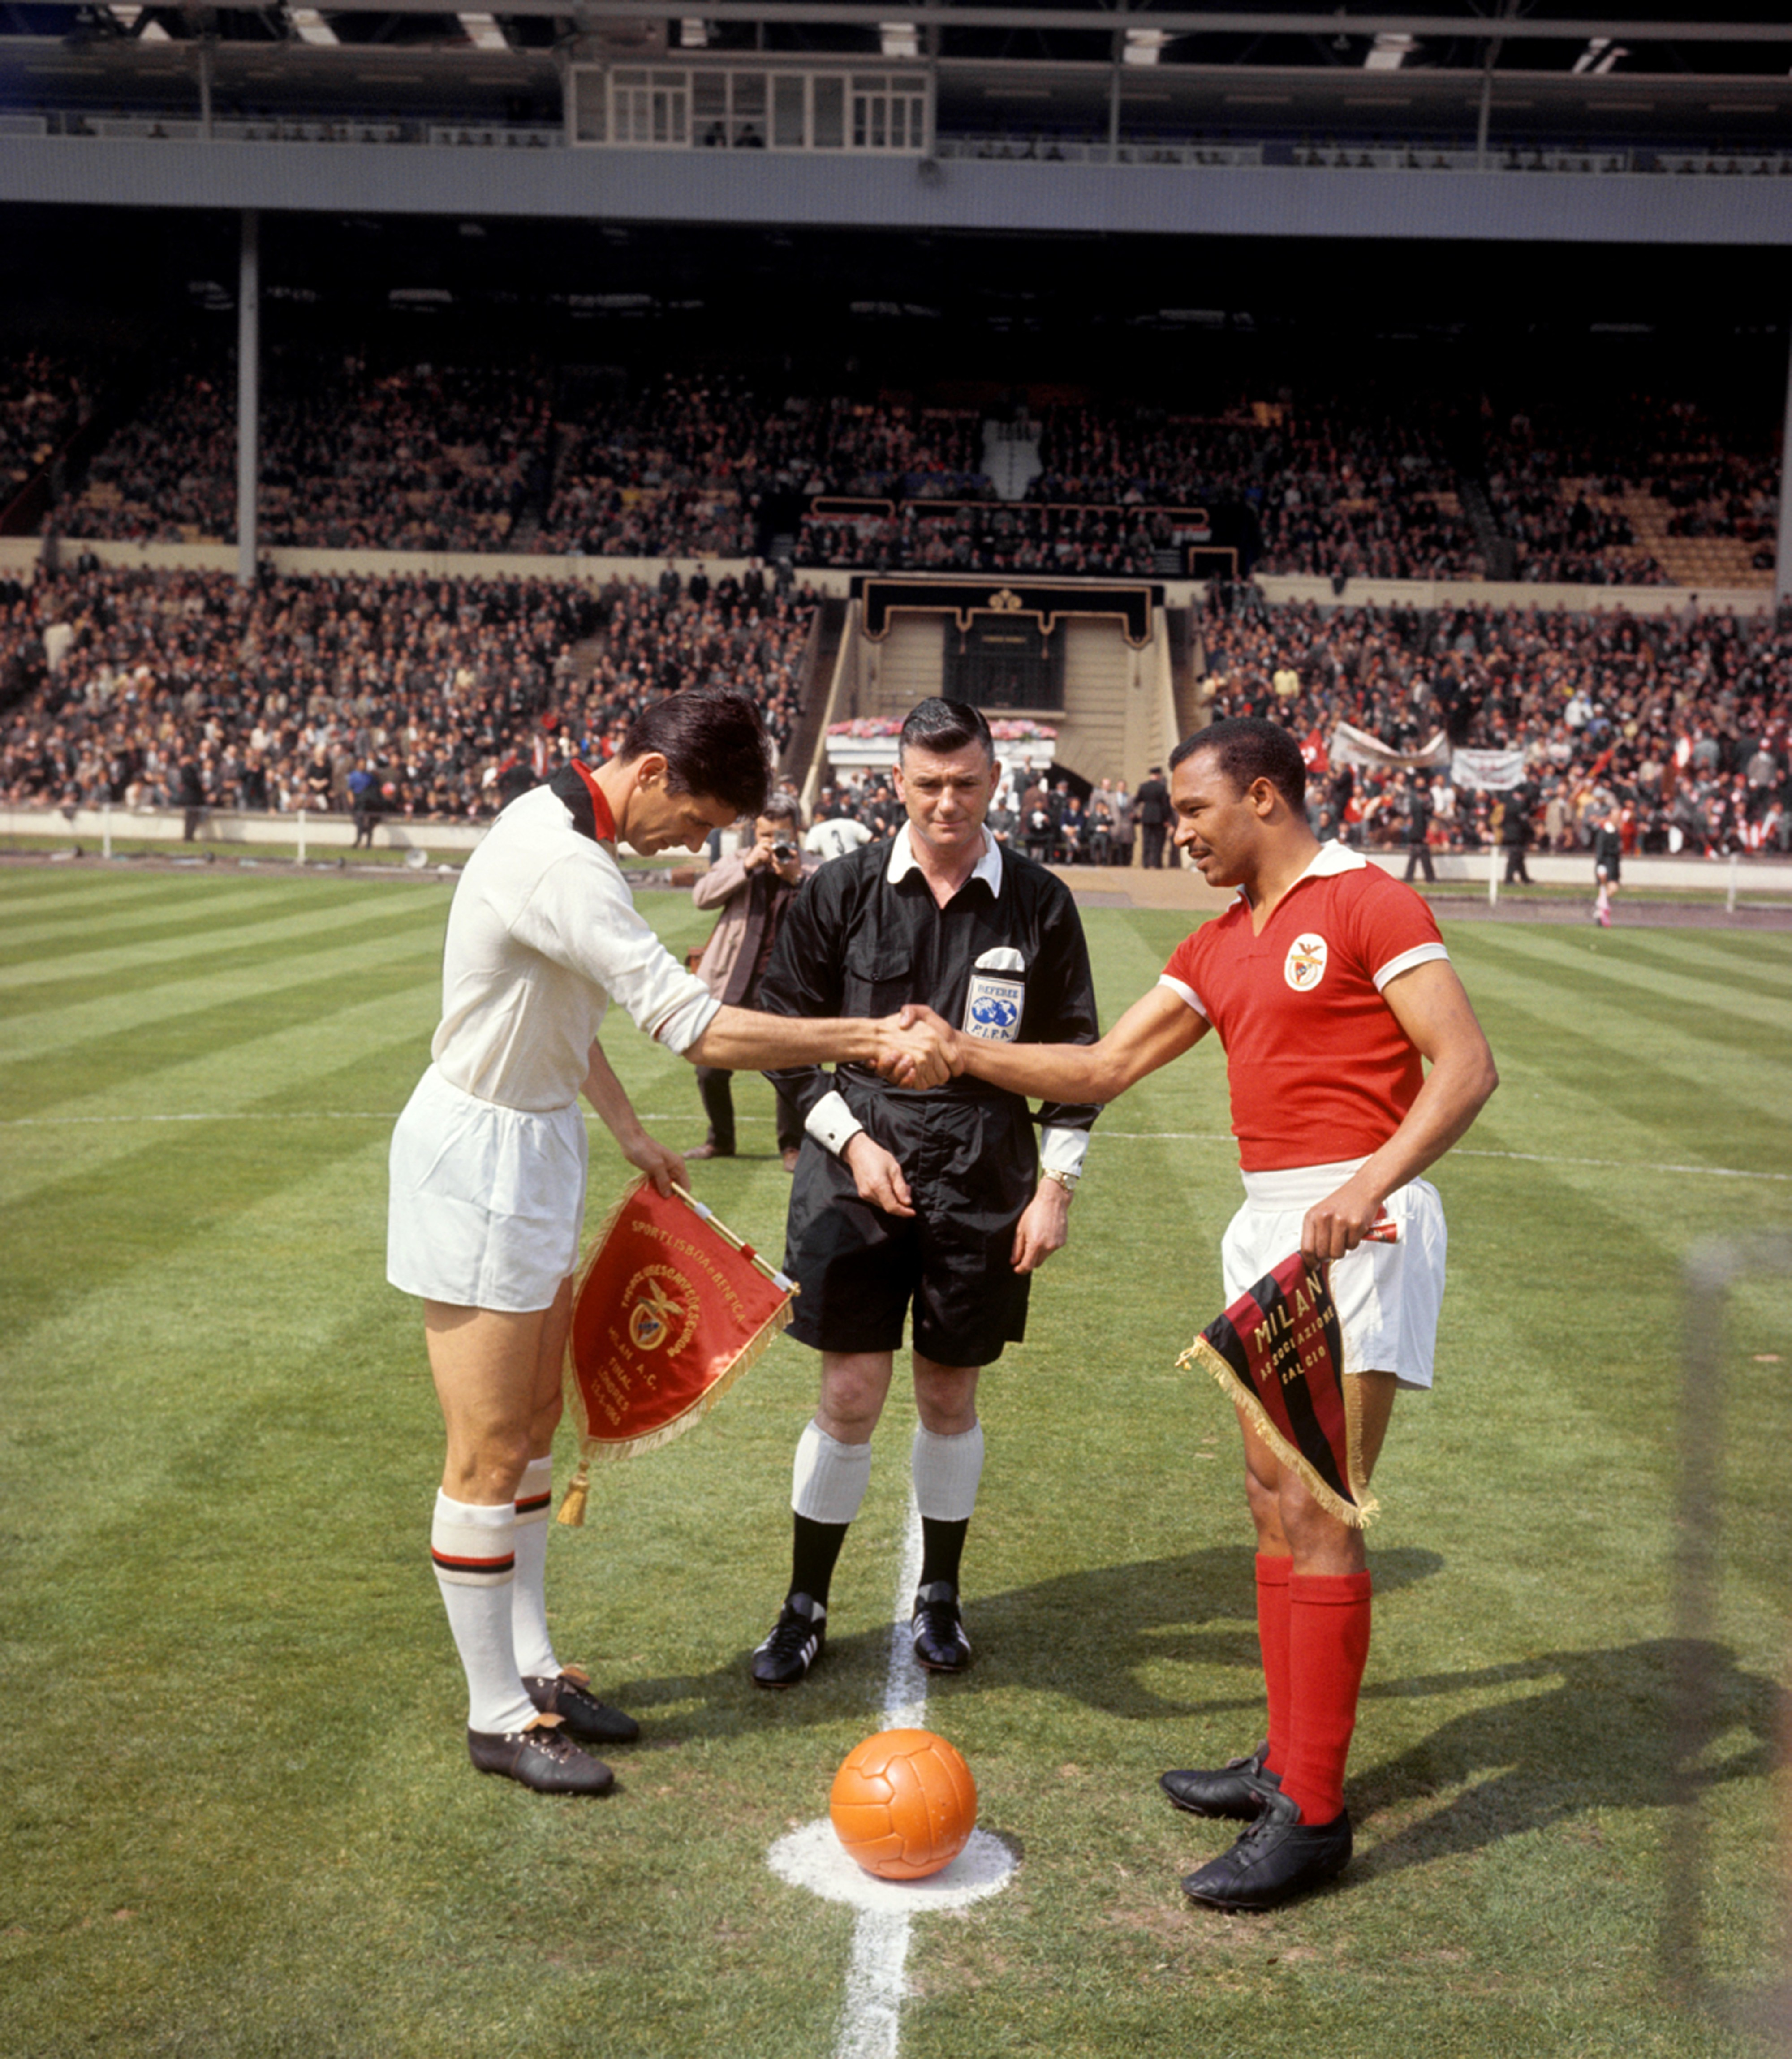 Pennants exchange before the UEFA Uefa European Clubs Champions' Cup final Milan vs Benfica played in 1963